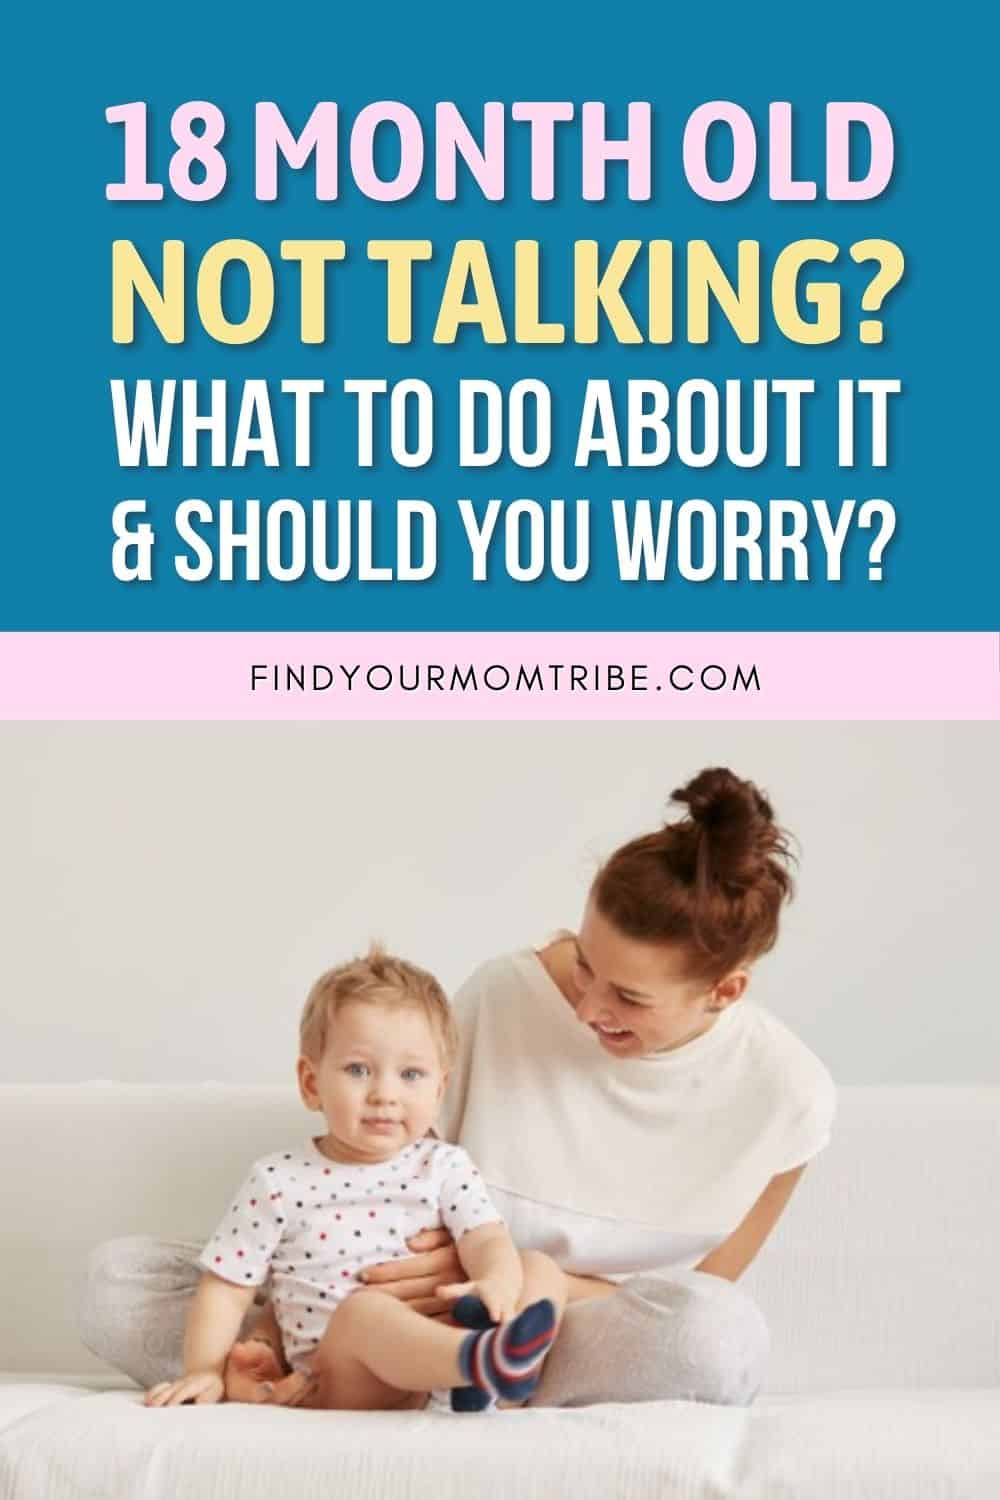 18 Month Old Not Talking – What To Do About It Pinterest